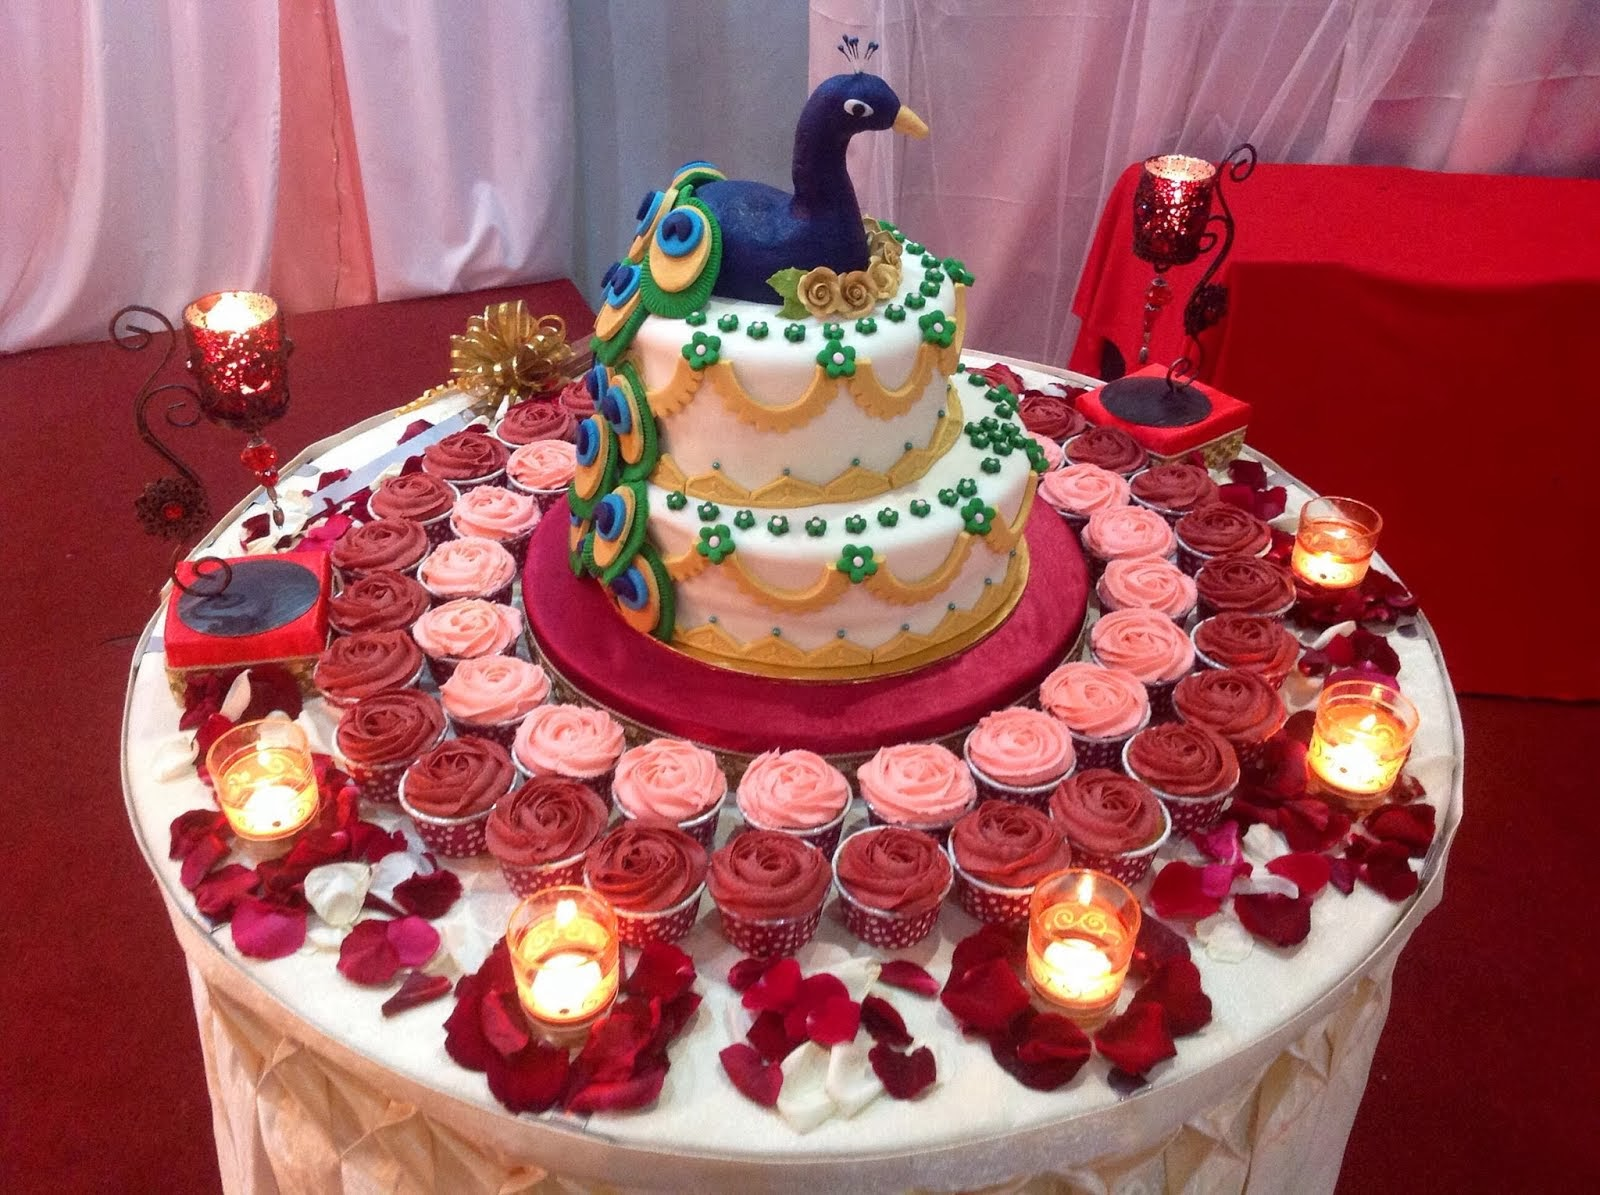 Cakes And Cupcakes Of Shams Magicaltouch In Johor Bahru